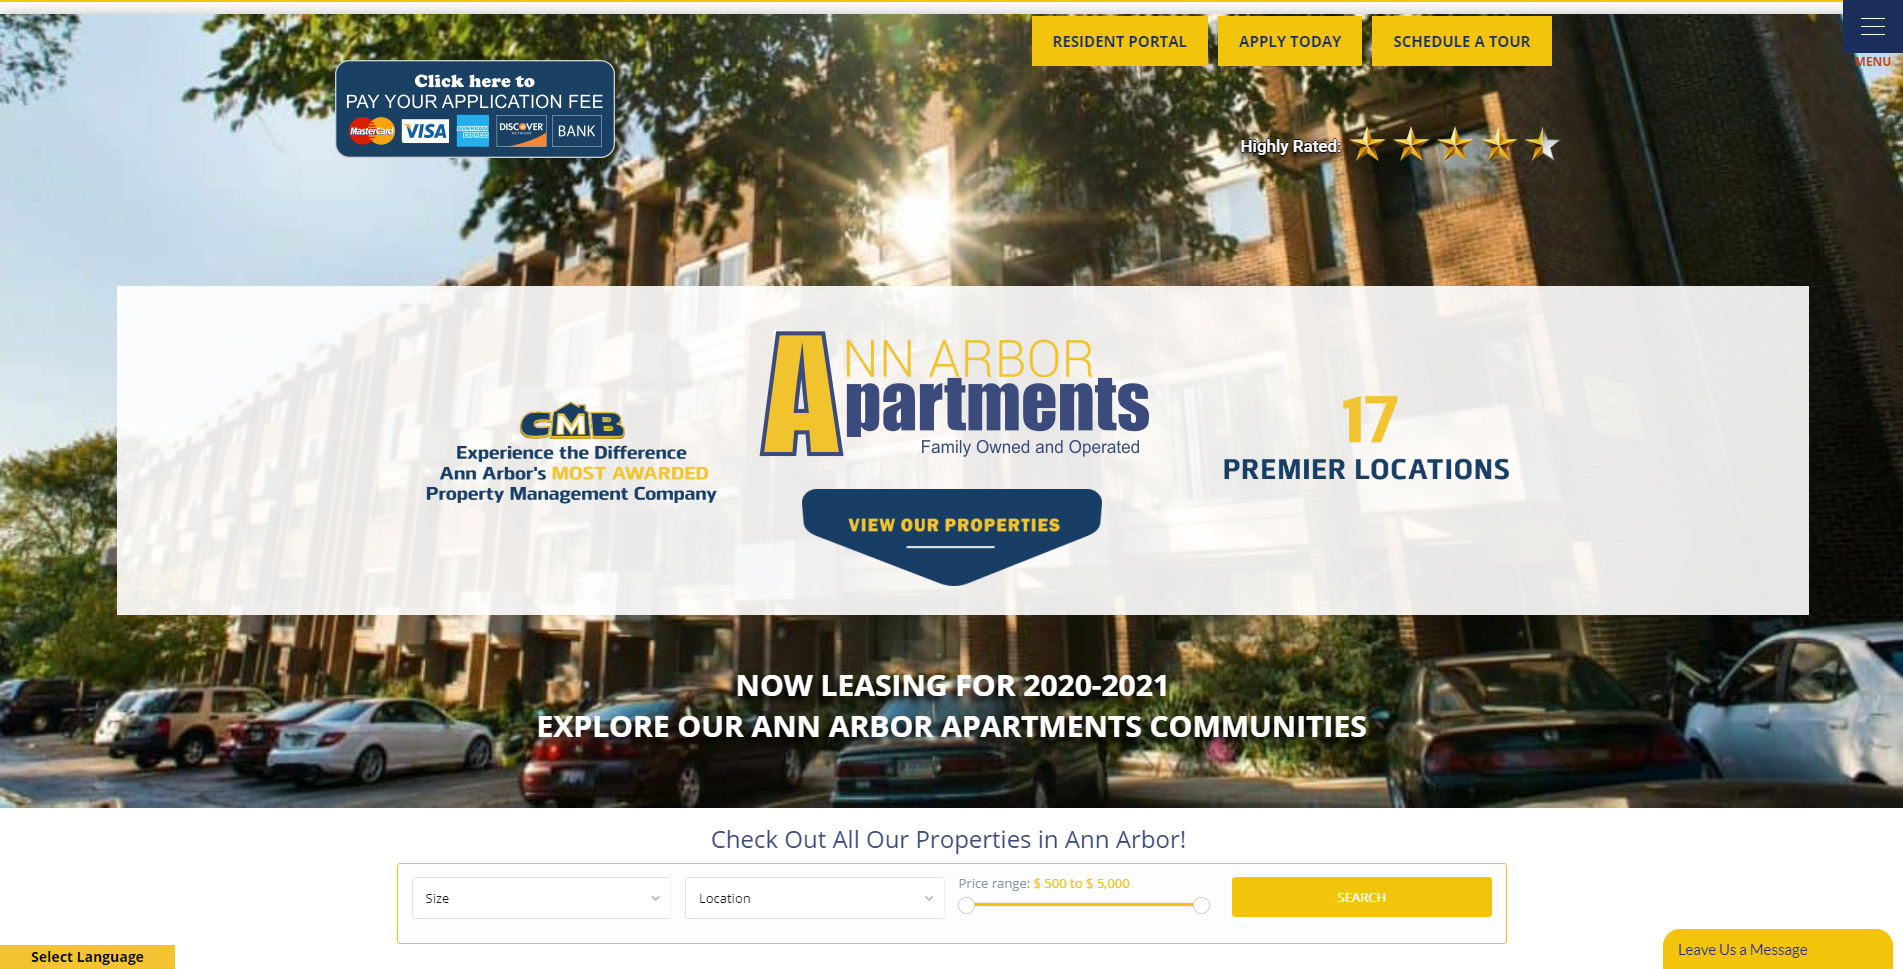 How Ann Arbor Apartments is dealing with property requesting during COVID 19